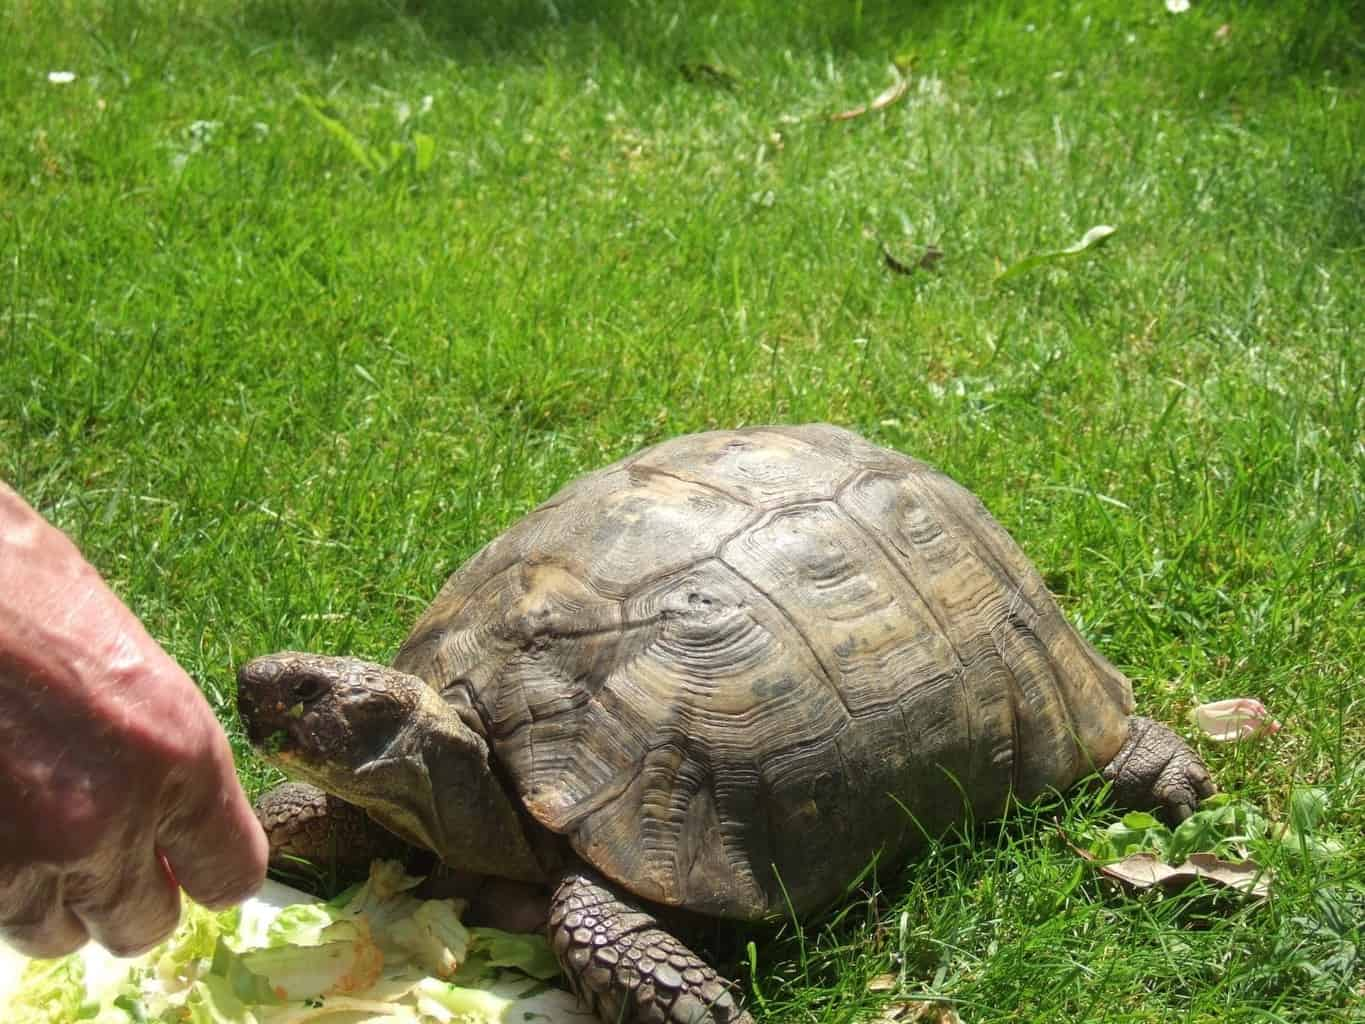 Urgent Appeal: Missing Tortoise from Fairhaven